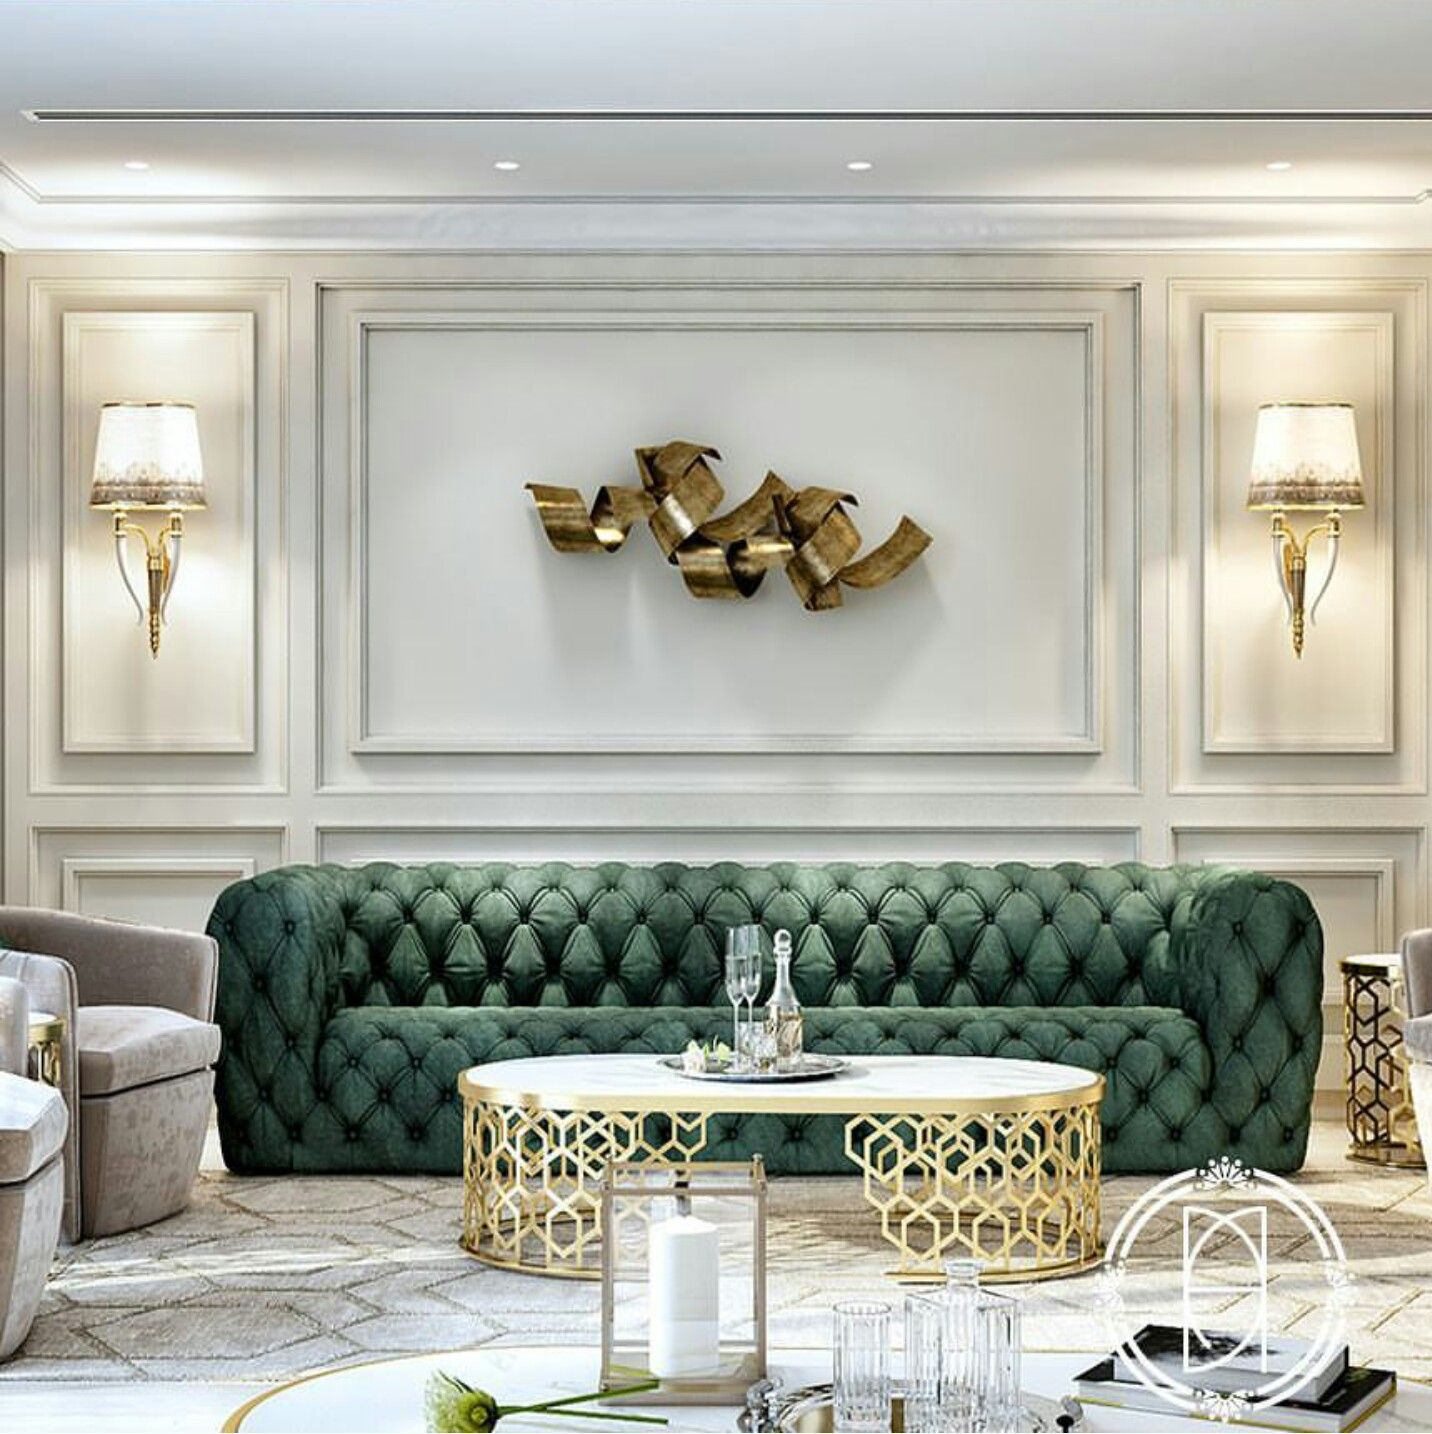 51 Luxury Living Rooms And Tips You Could Use From Them: Pin By Roma Nagpal On Home Decor In 2019